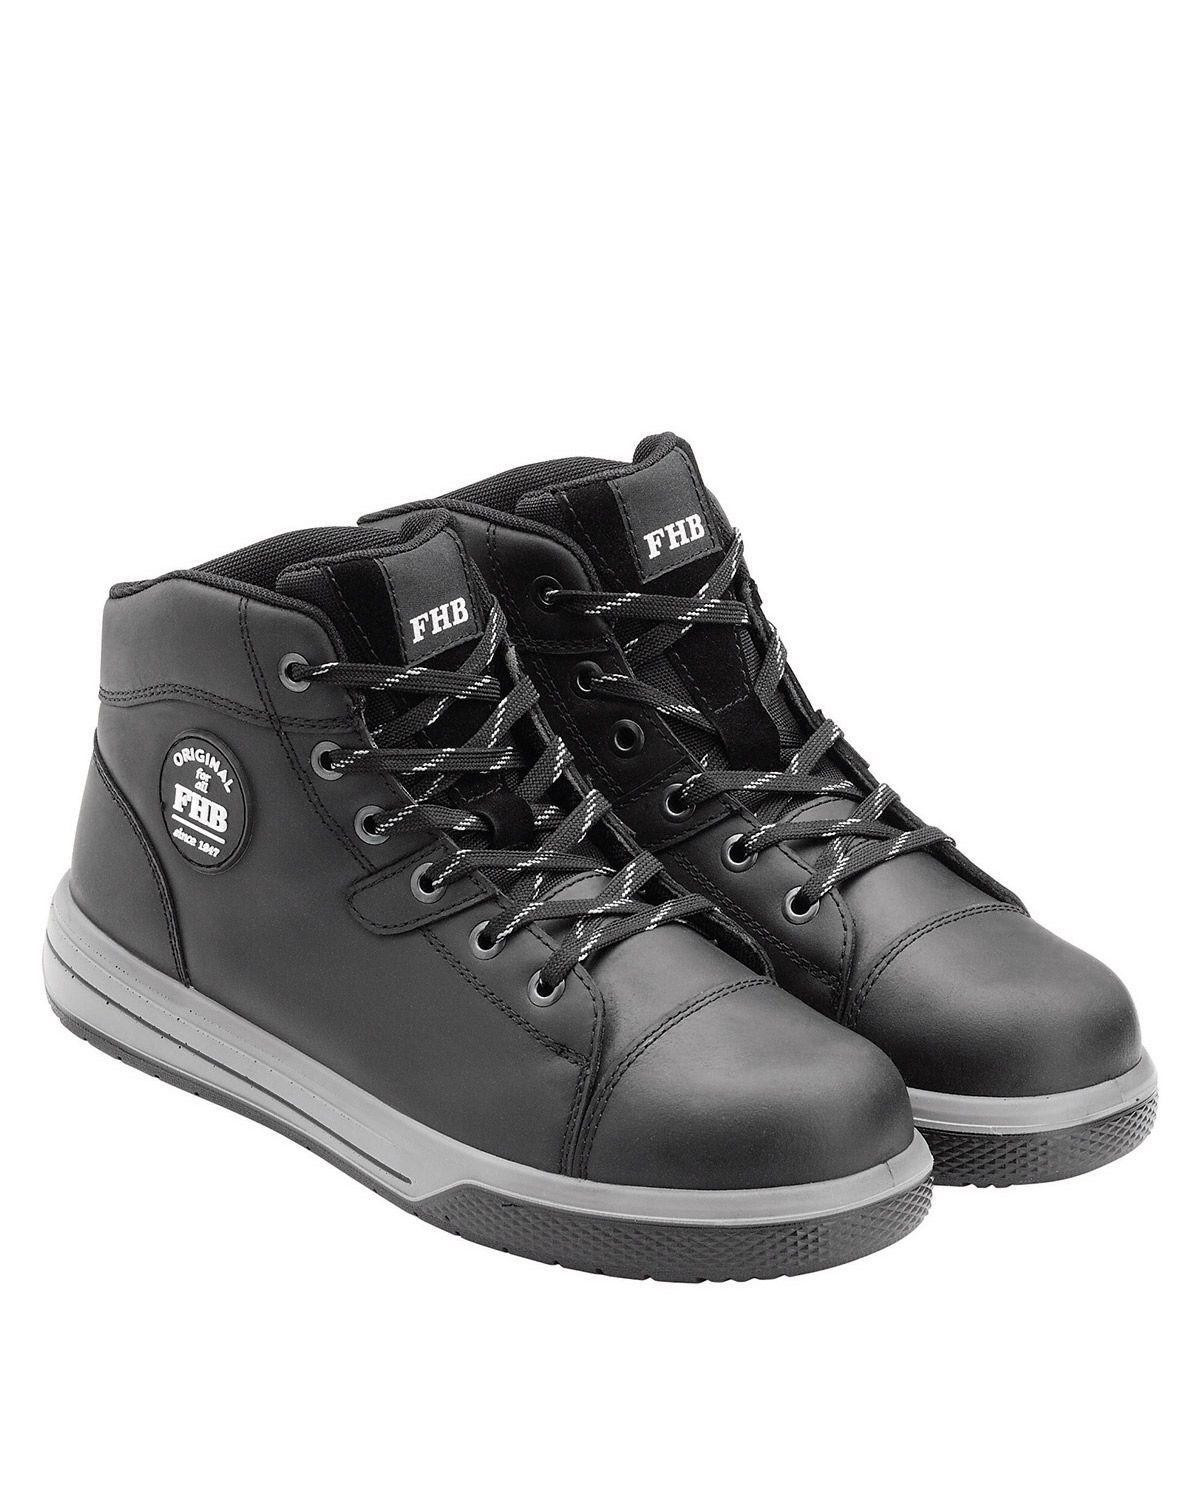 Image of   FHB High Top Sikkerhedssko - Linus (Sort, 43 EU / 9 UK)